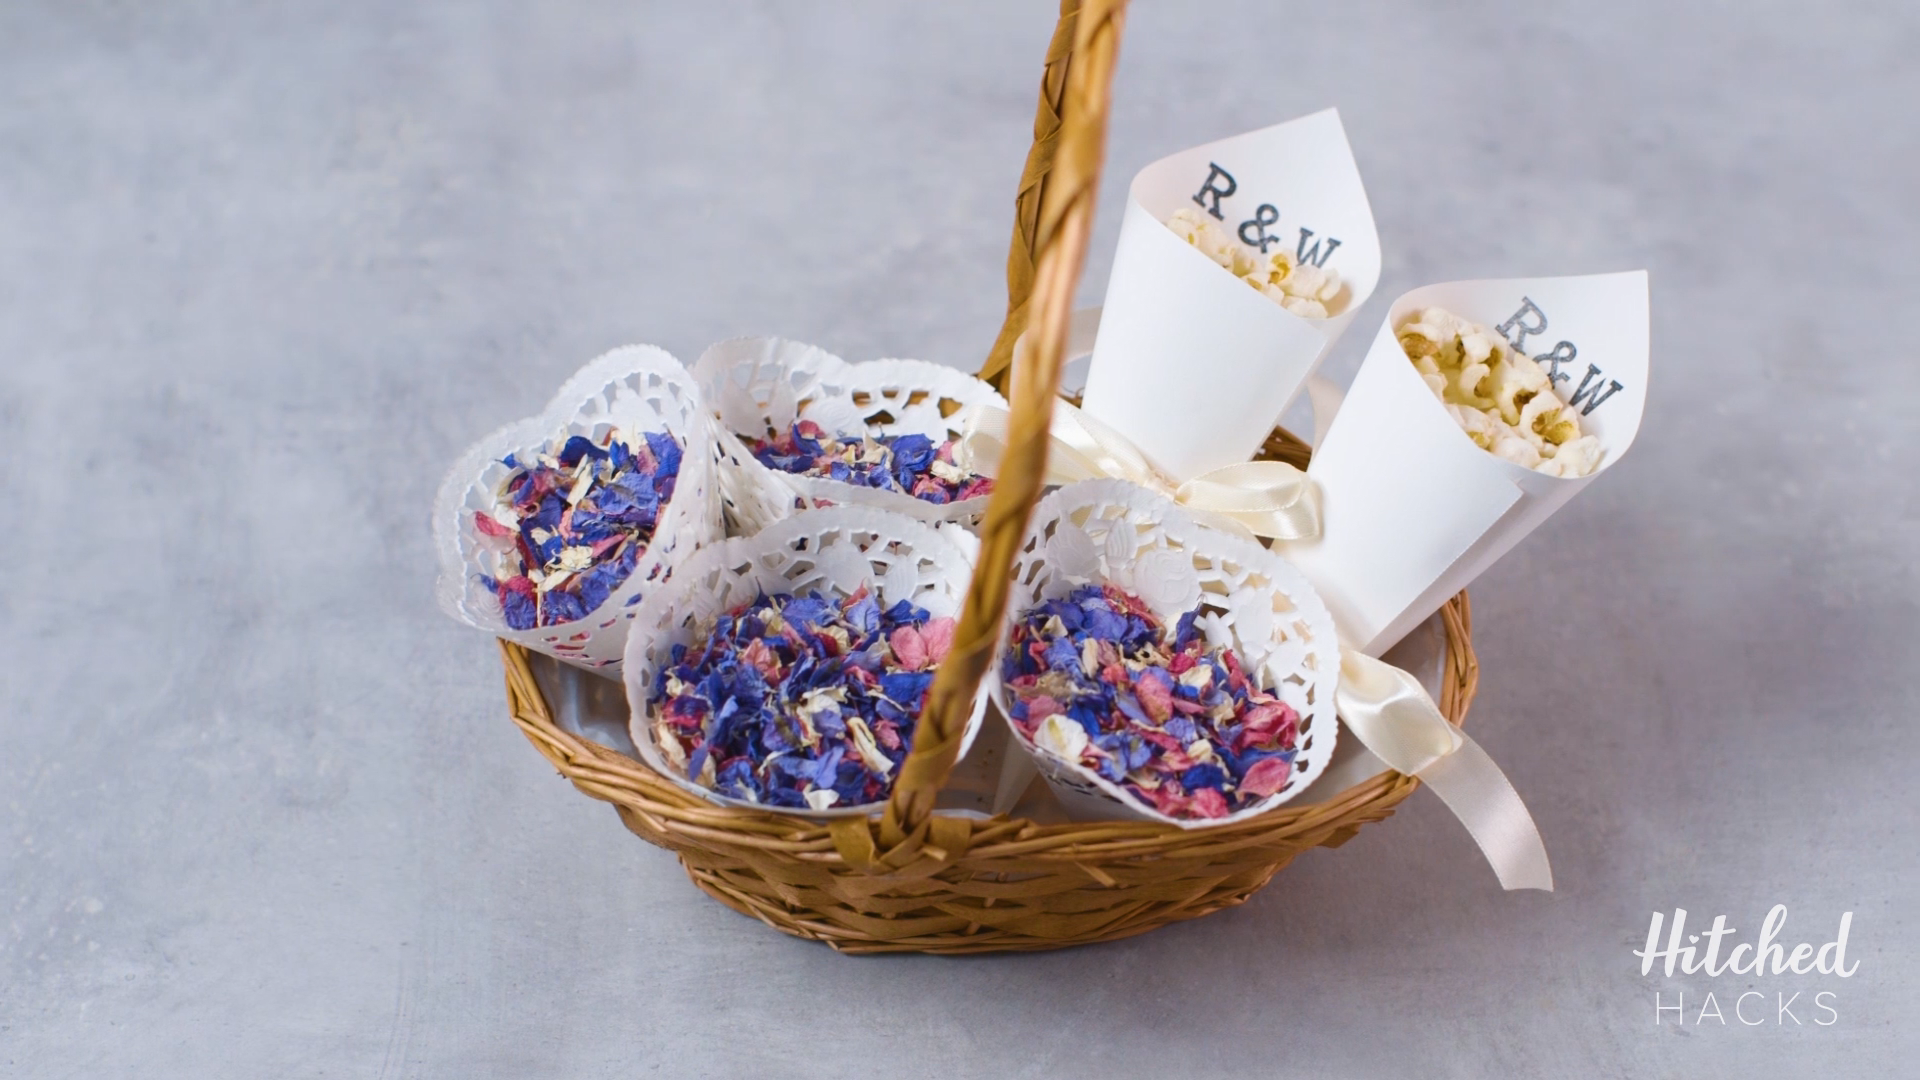 Hitched Hacks: How to Make Your Own DIY Confetti Cones